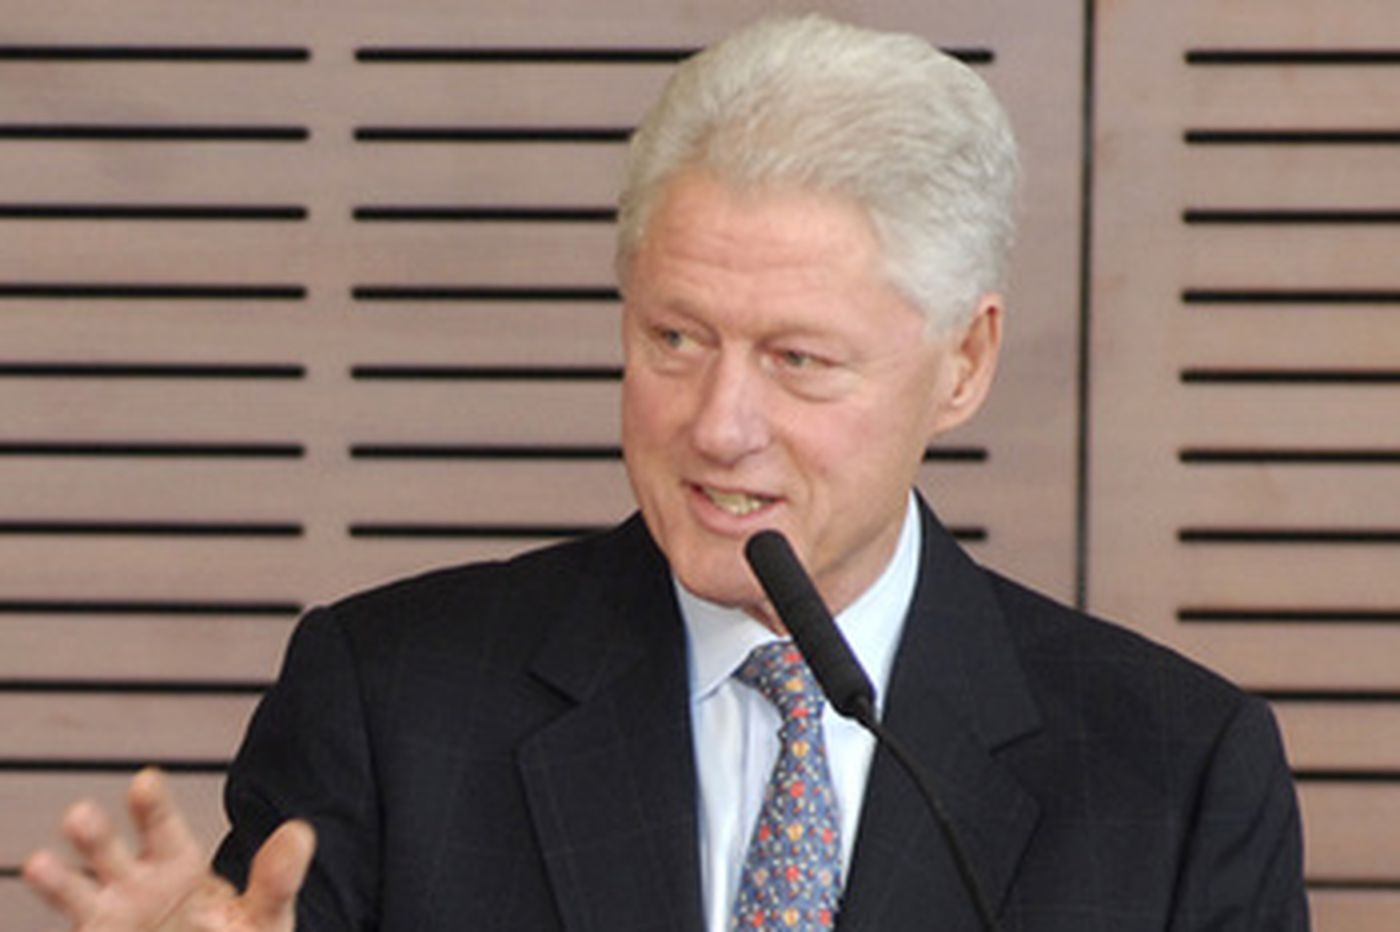 Clinton's charity releases donor list